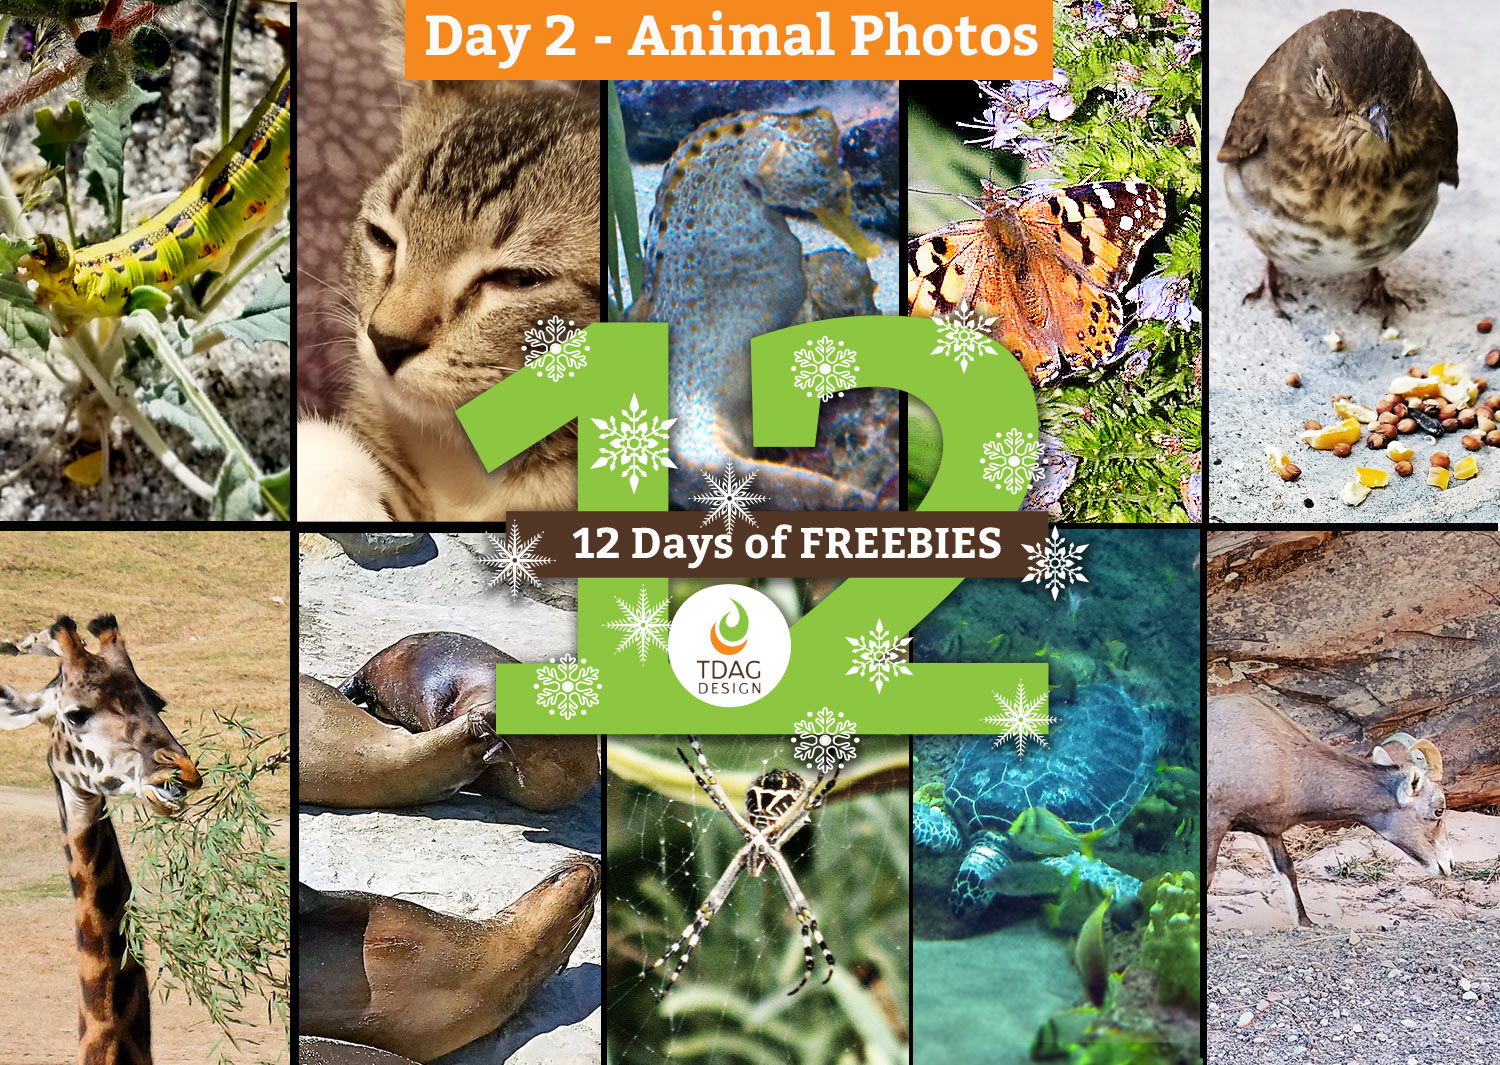 12 days pf freebies cover image: day 2